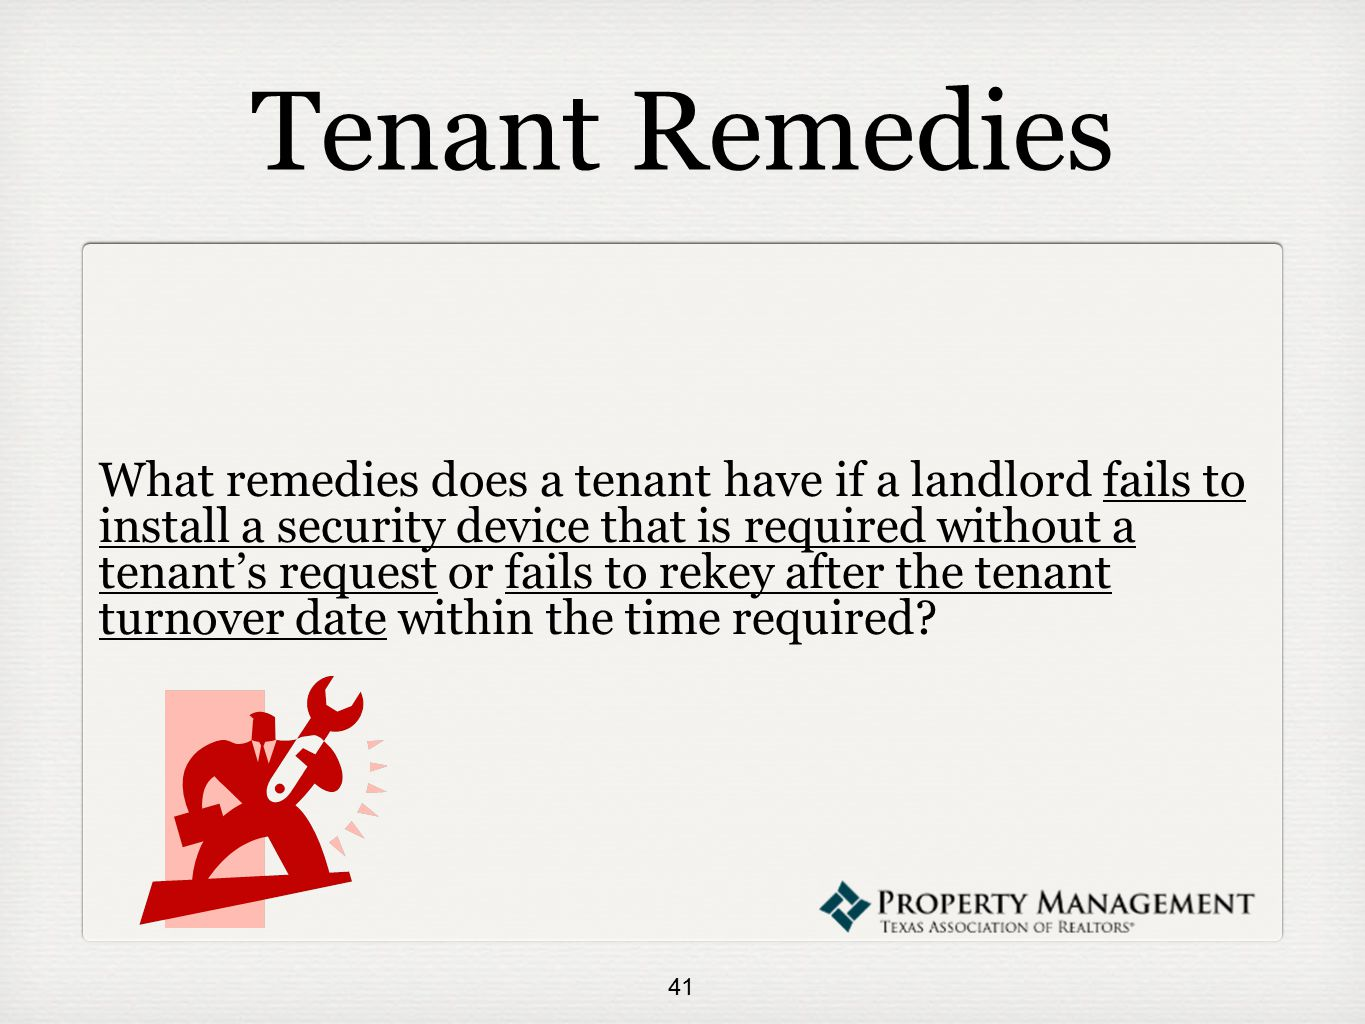 Tenant Remedies What remedies does a tenant have if a landlord fails to install a security device that is required without a tenant's request or fails to rekey after the tenant turnover date within the time required.